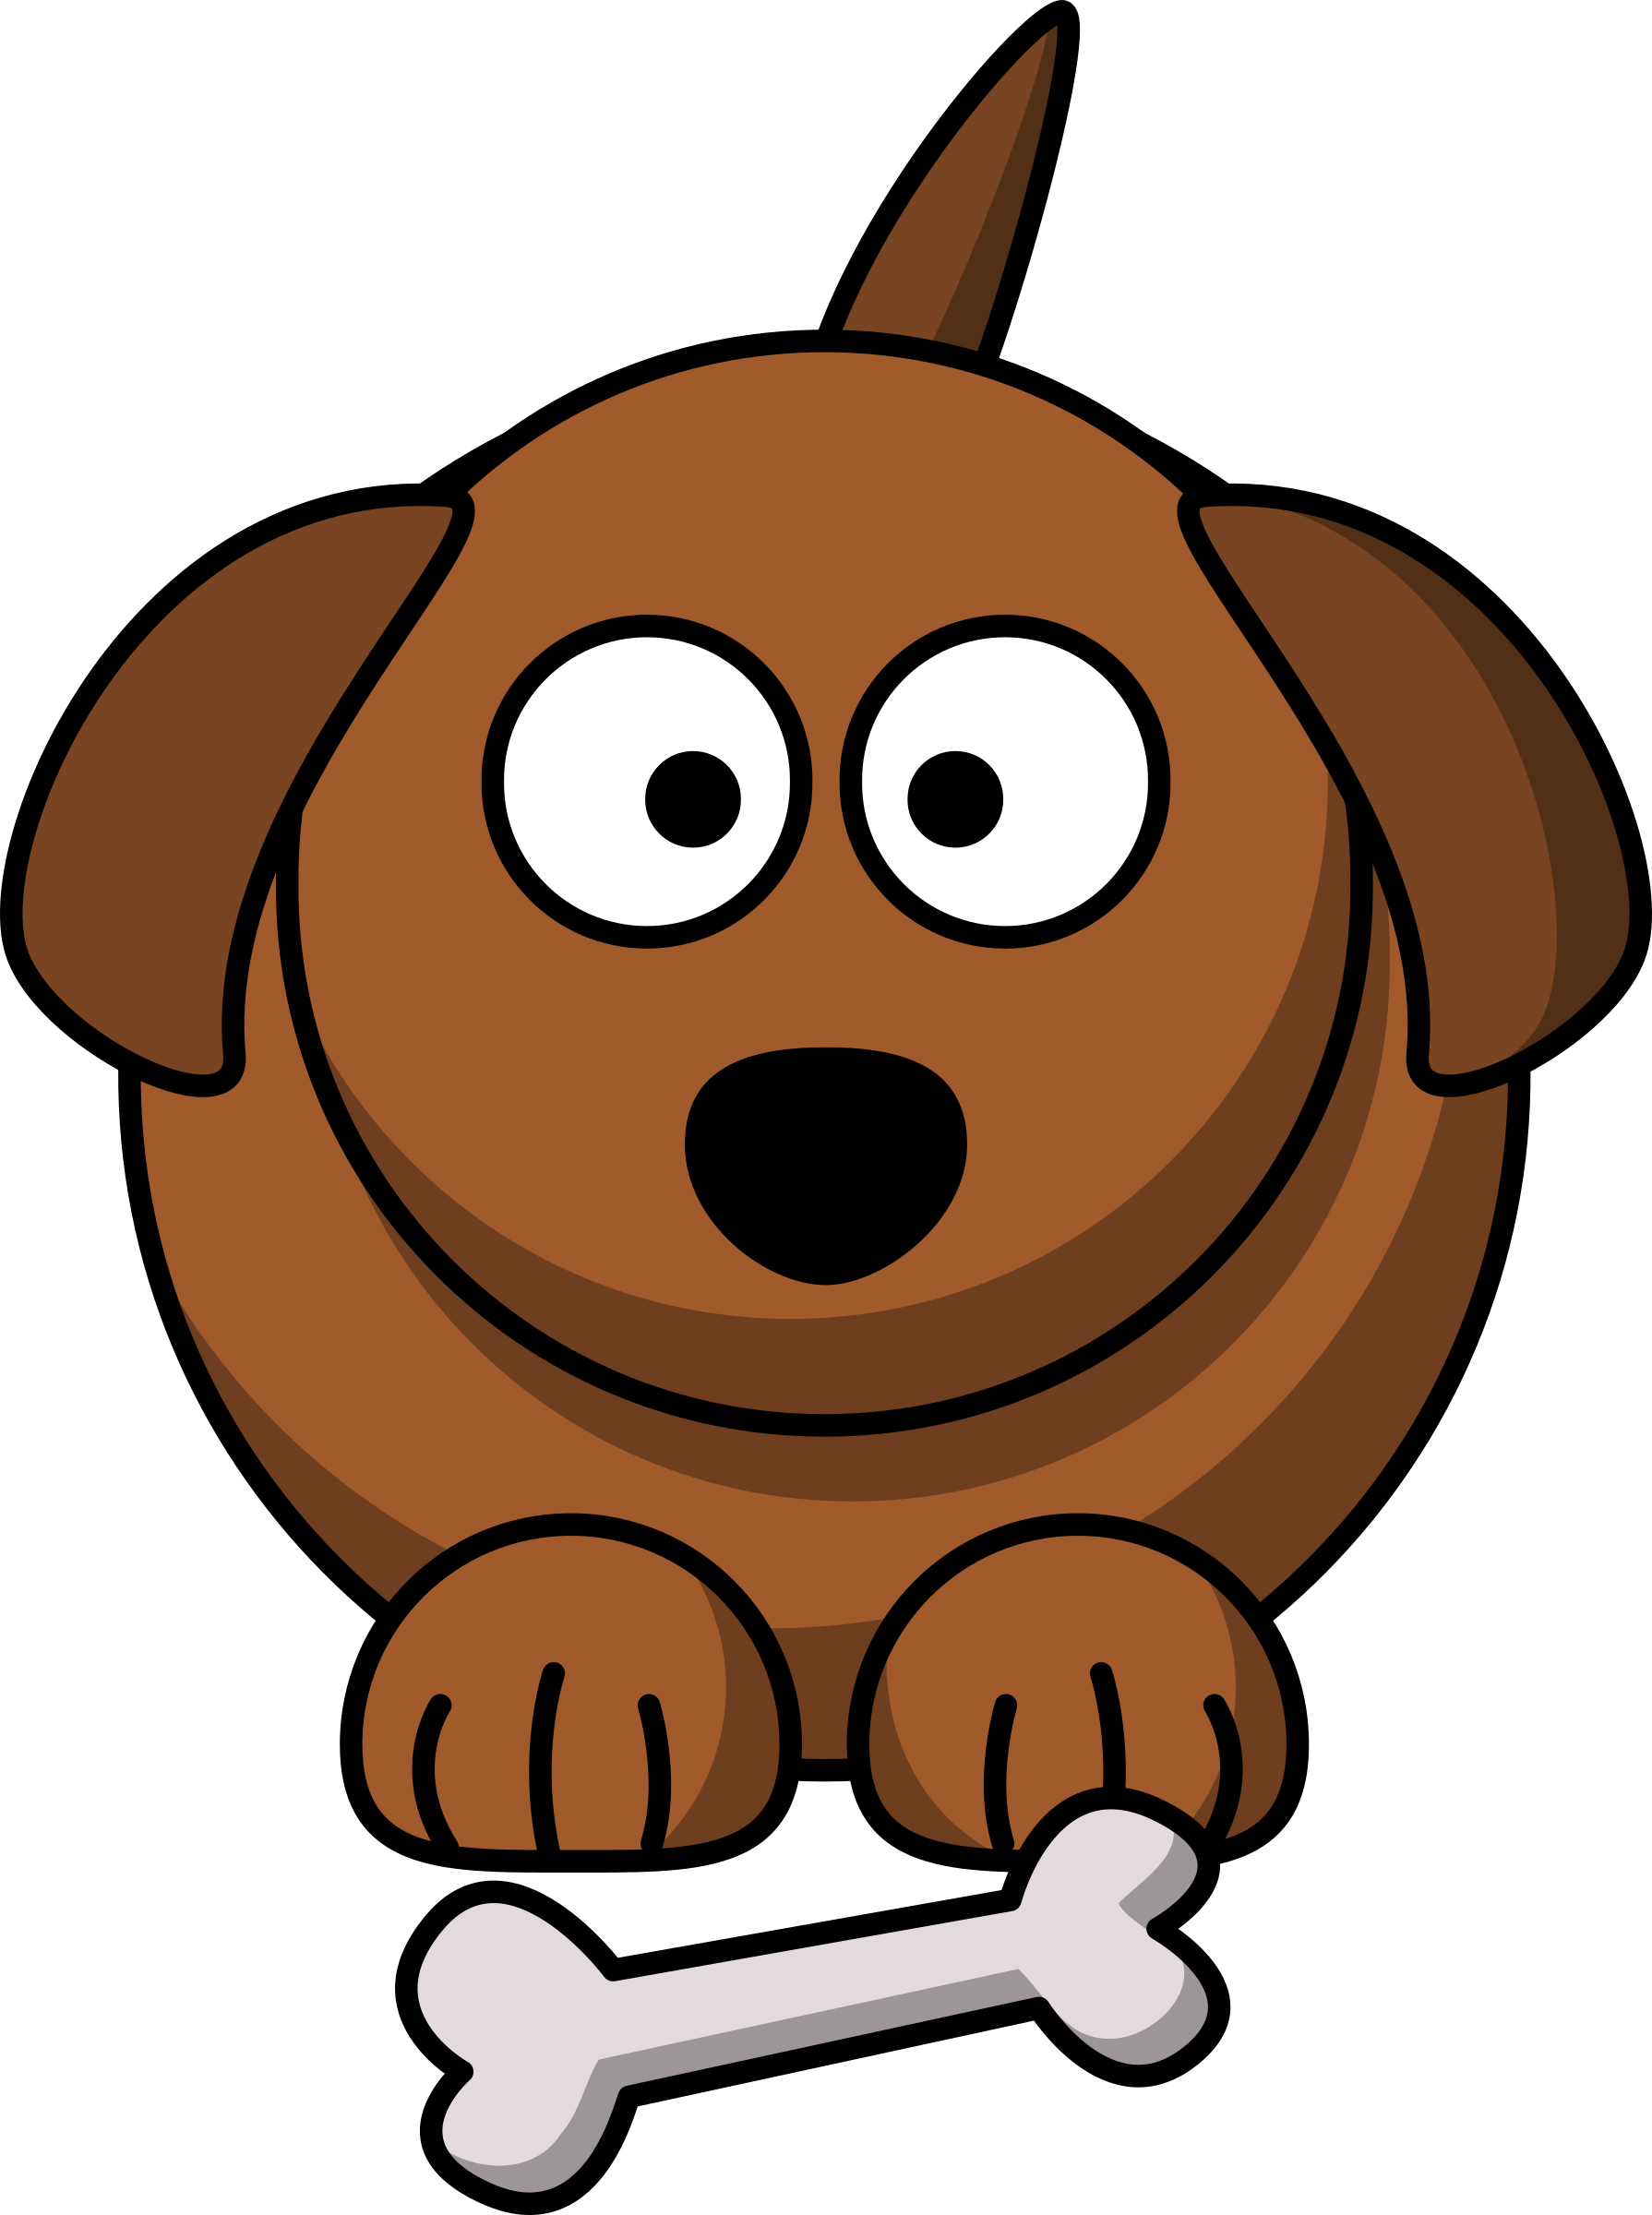 Cartoon bones images on. Picture clipart dog